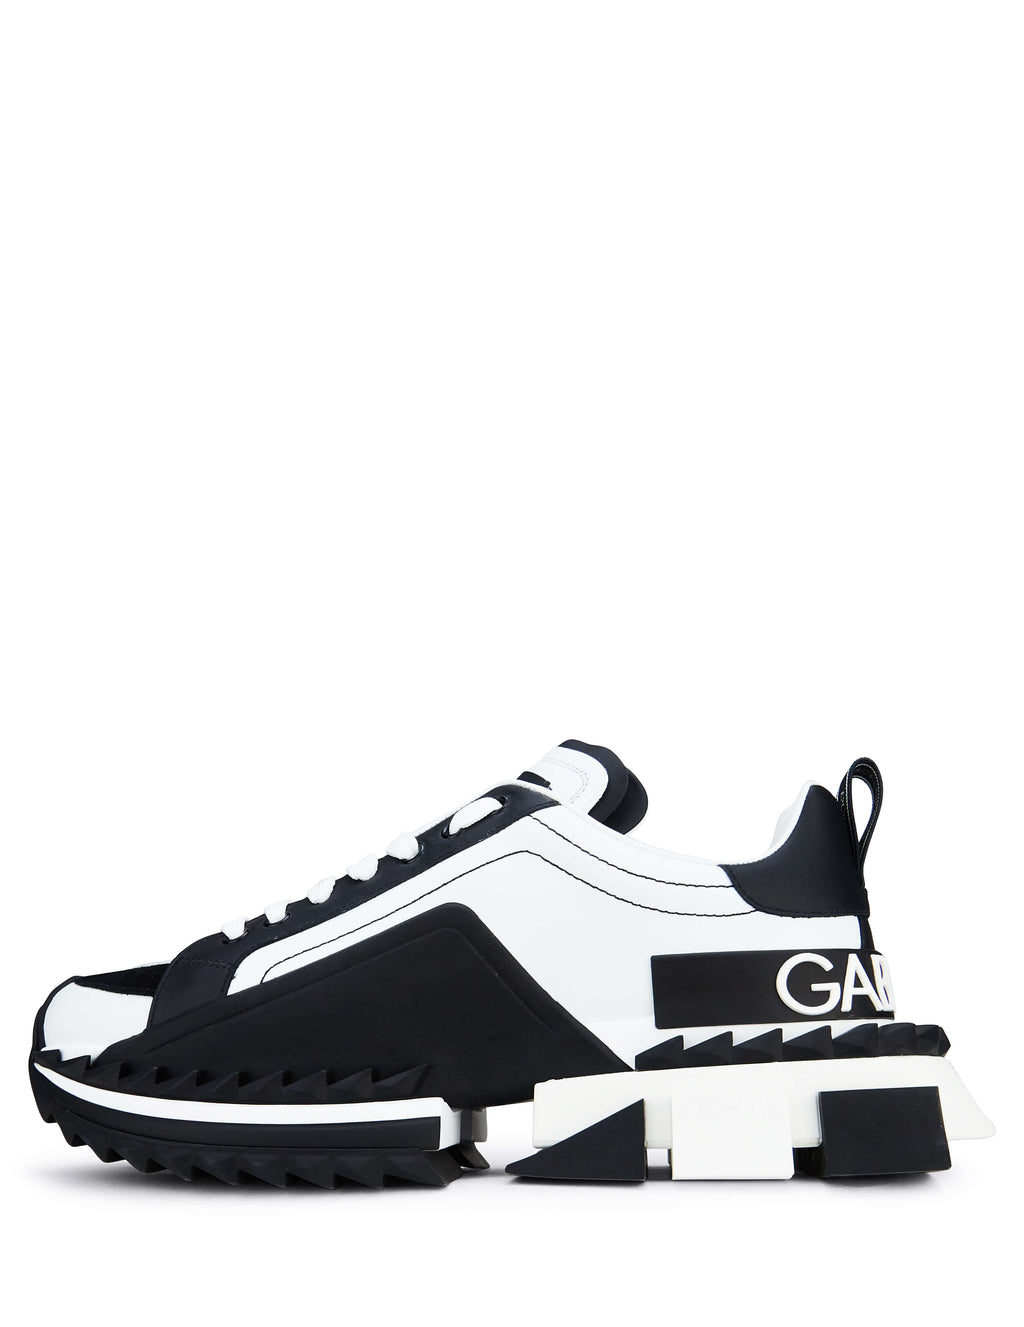 Dolce&Gabbana Men's Giulio Fashion Black/White Super Sneakers CS1649AZ69289697